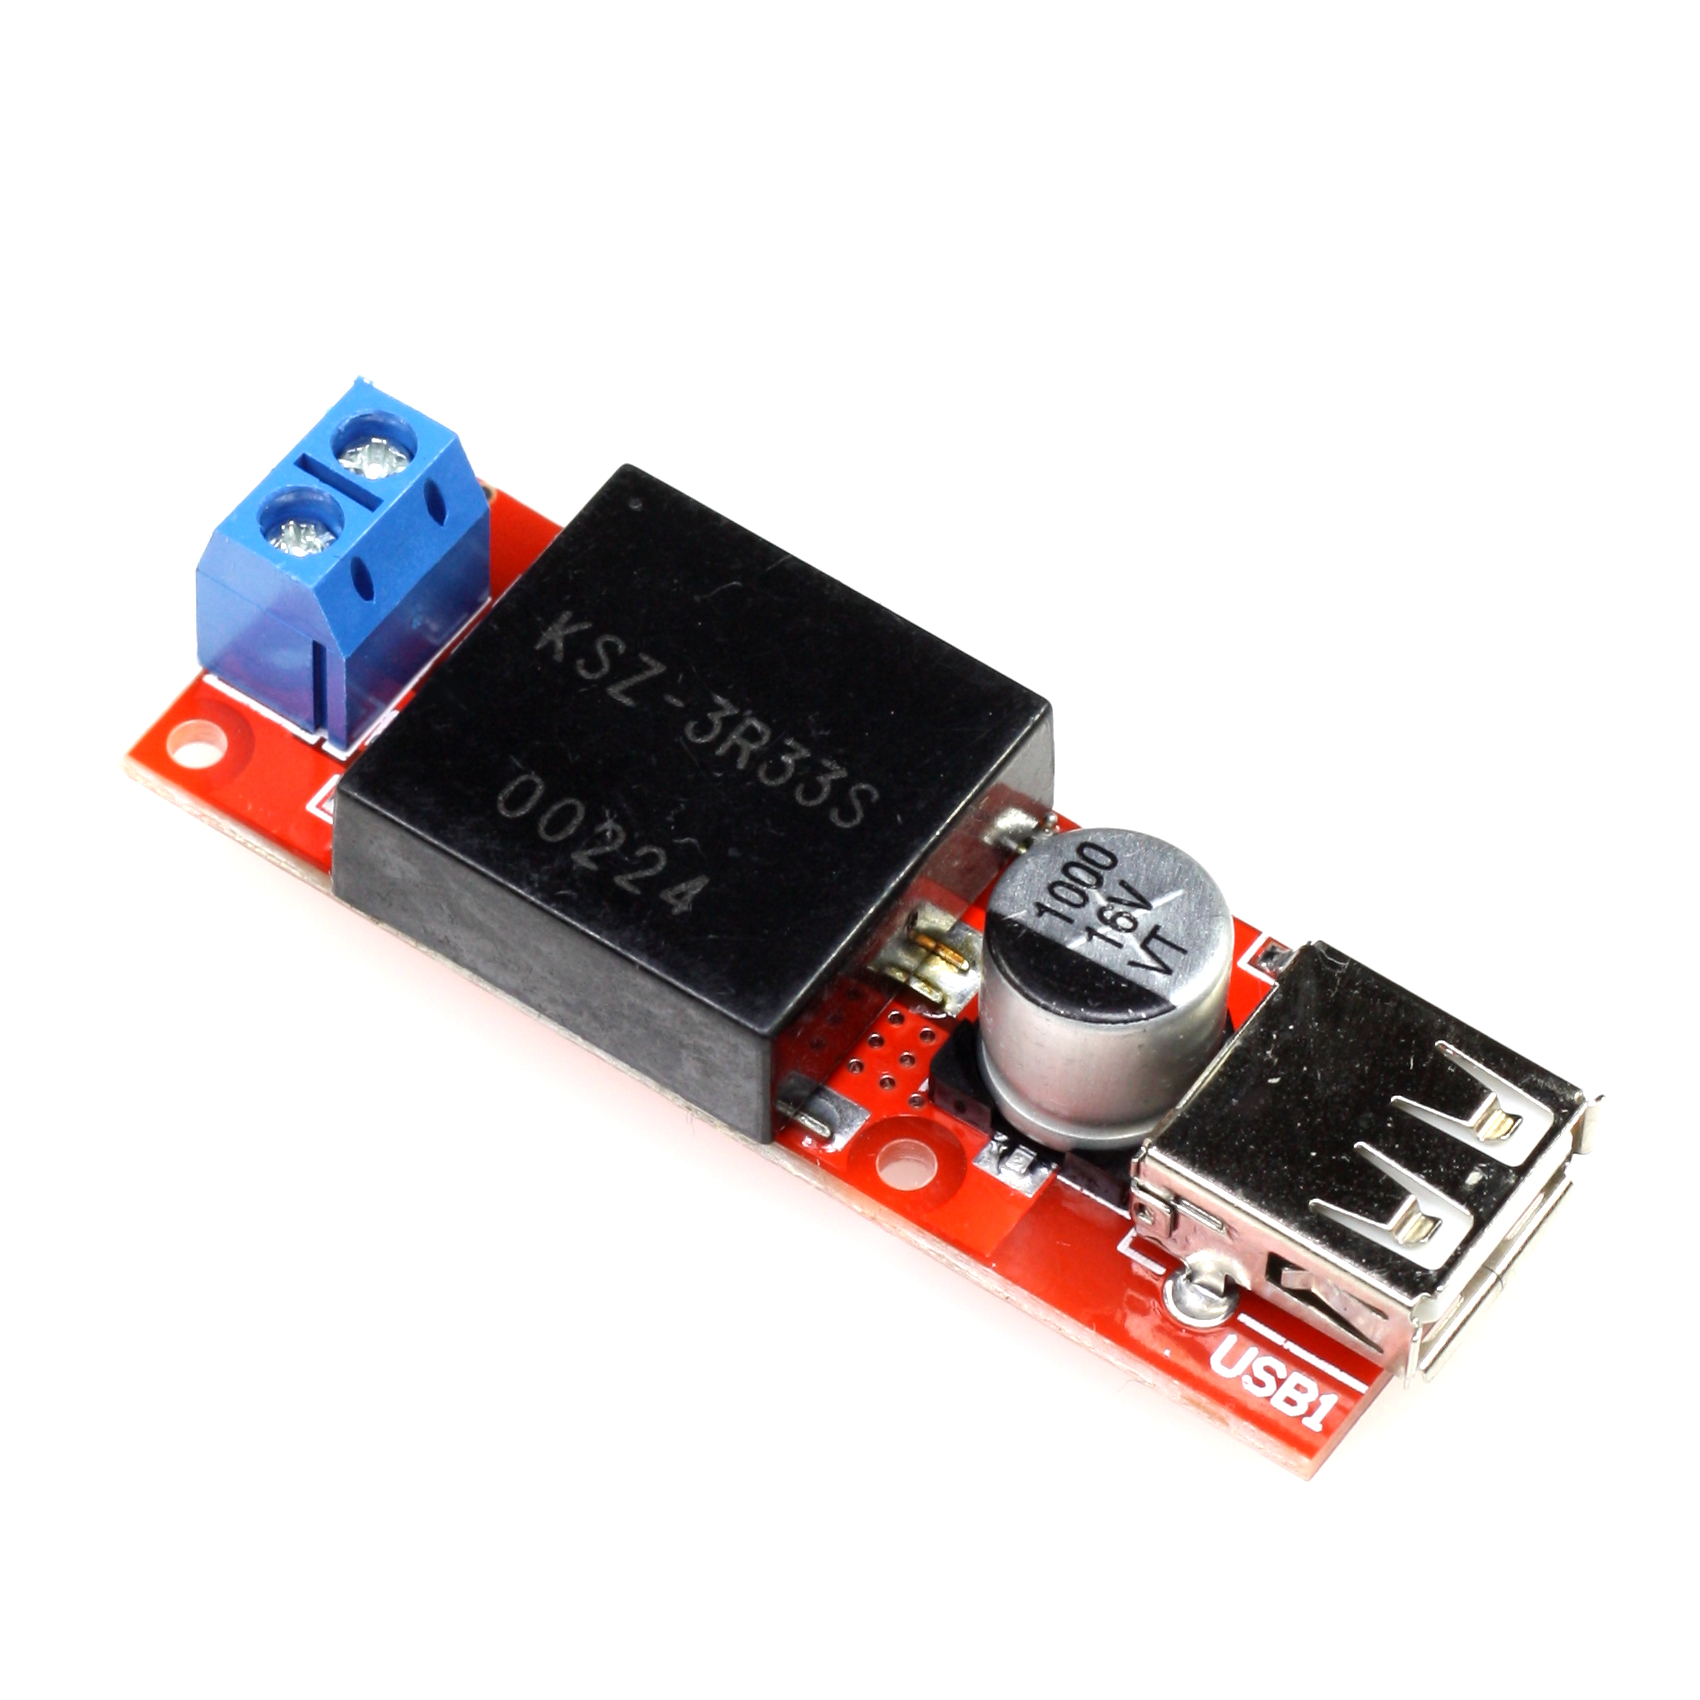 5v 3a Dc Converter Usb Step Down 7 24v Kis3r33s To Circuit With Module